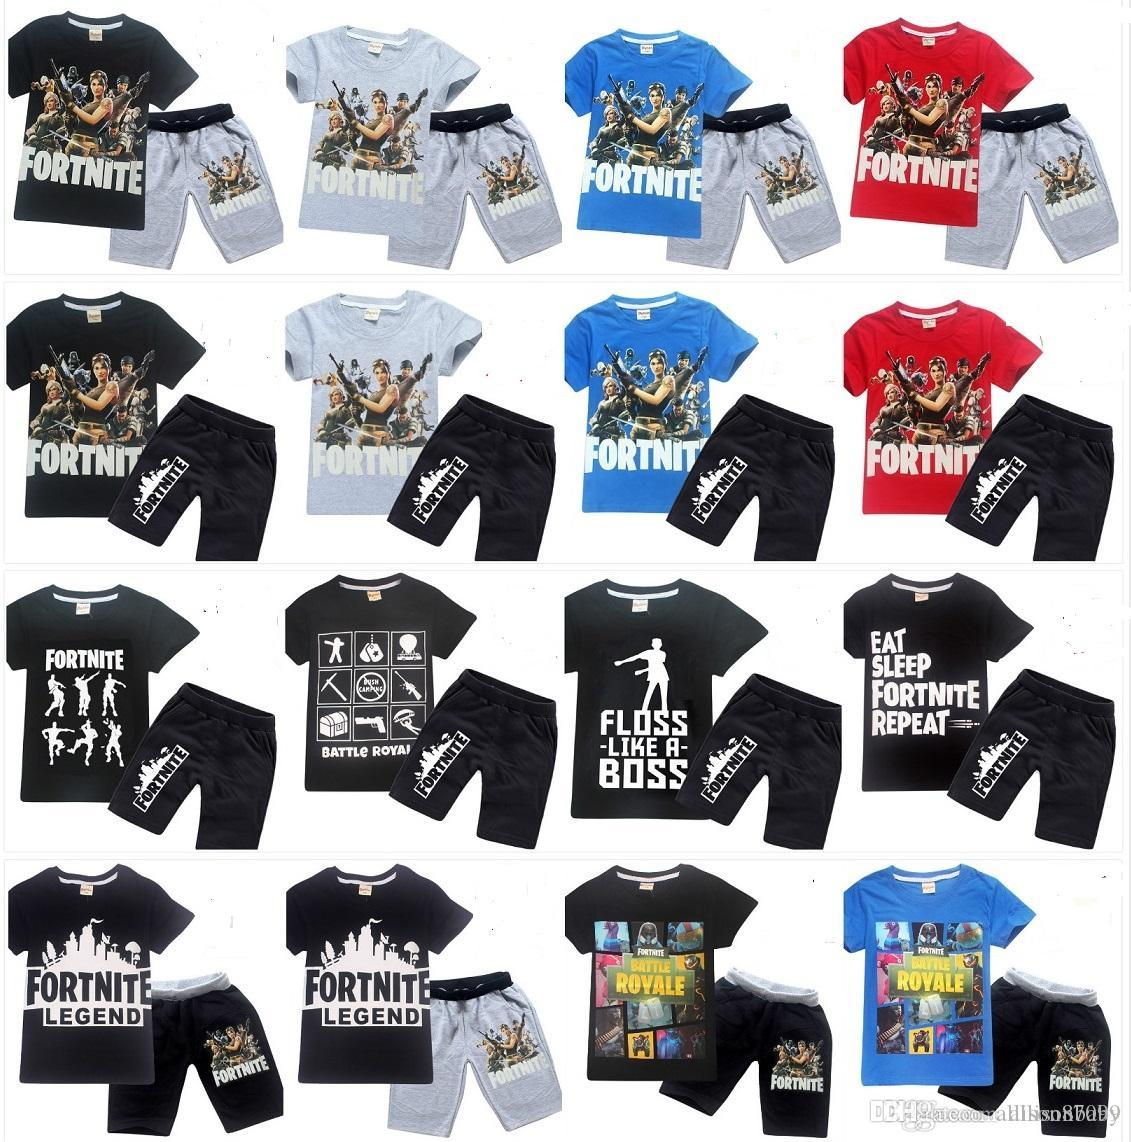 029bf75b 2019 Summer Fortnite Kids Clothing Set T Shirt Tees+ Shorts 100%cotton  Middle Big Kids Cool Print 2019 Cheap Wholesale Free DHL From Allisonbaby,  ...